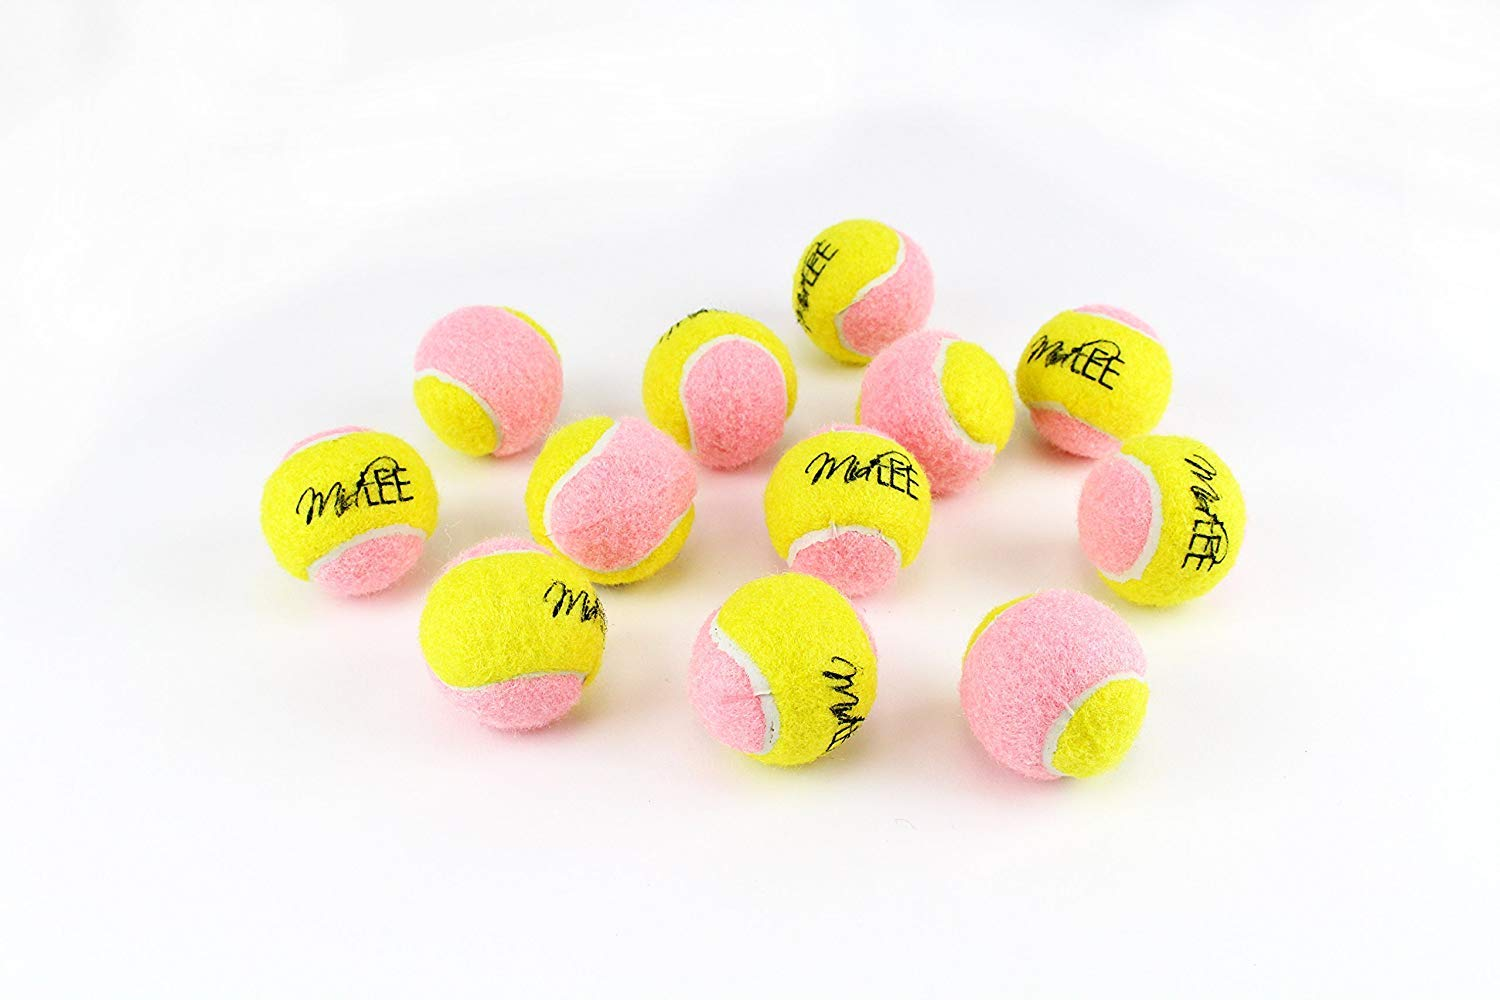 Midlee X-Small Dog Tennis Balls 1.5'' Pack of 12 (Pink/Yellow, 1.5 inch)